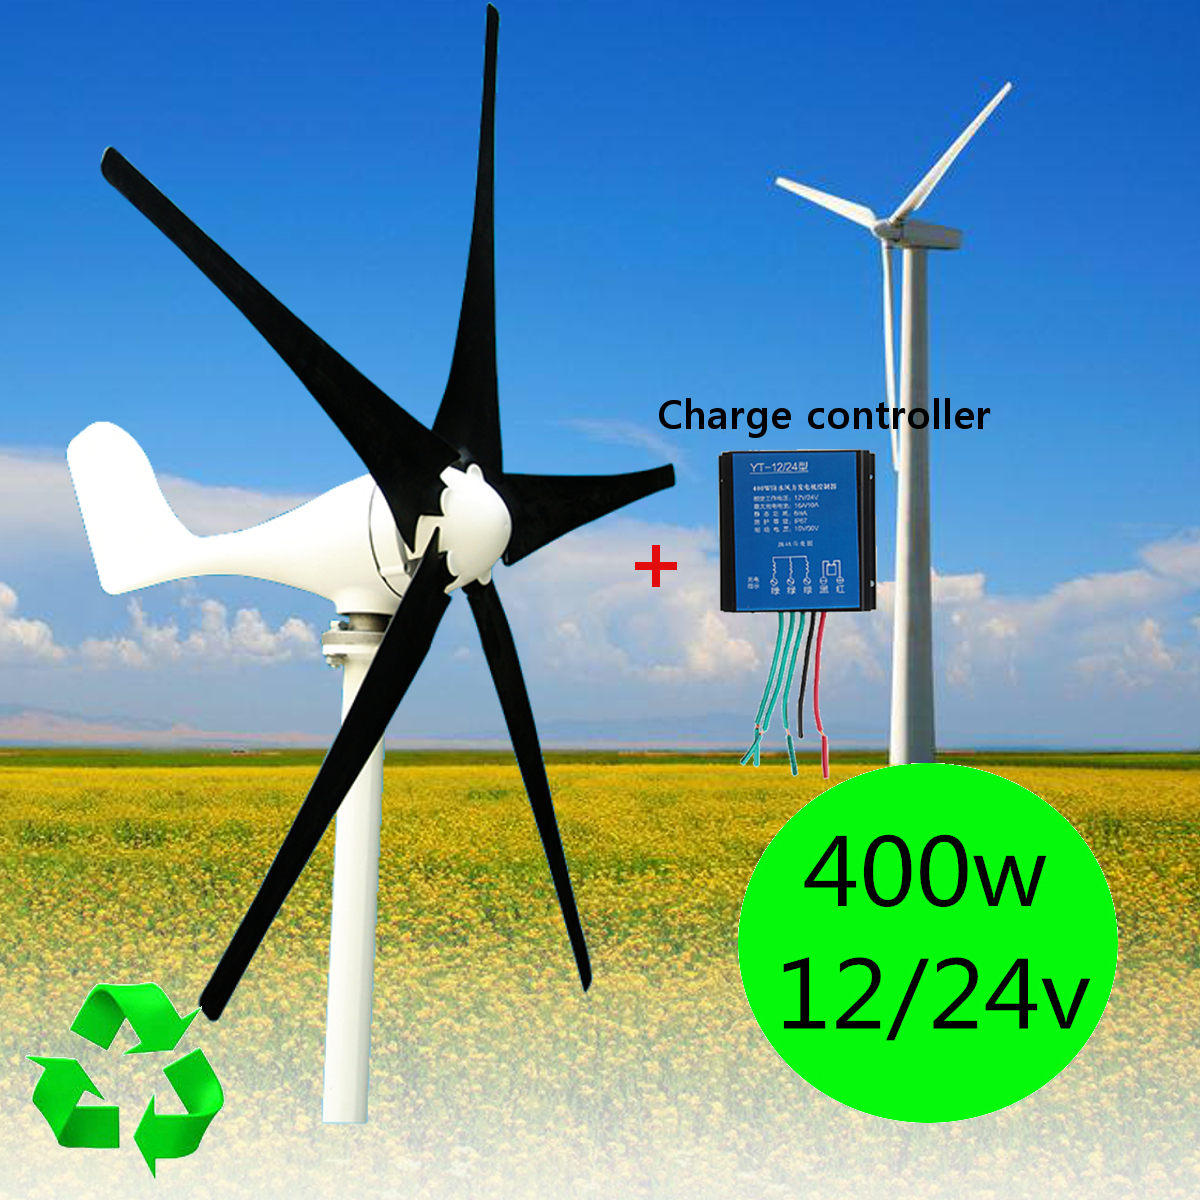 400W Power Wind Turbine Generator DC 24V 5 Blade with Windmill Charge Controller (Max... by